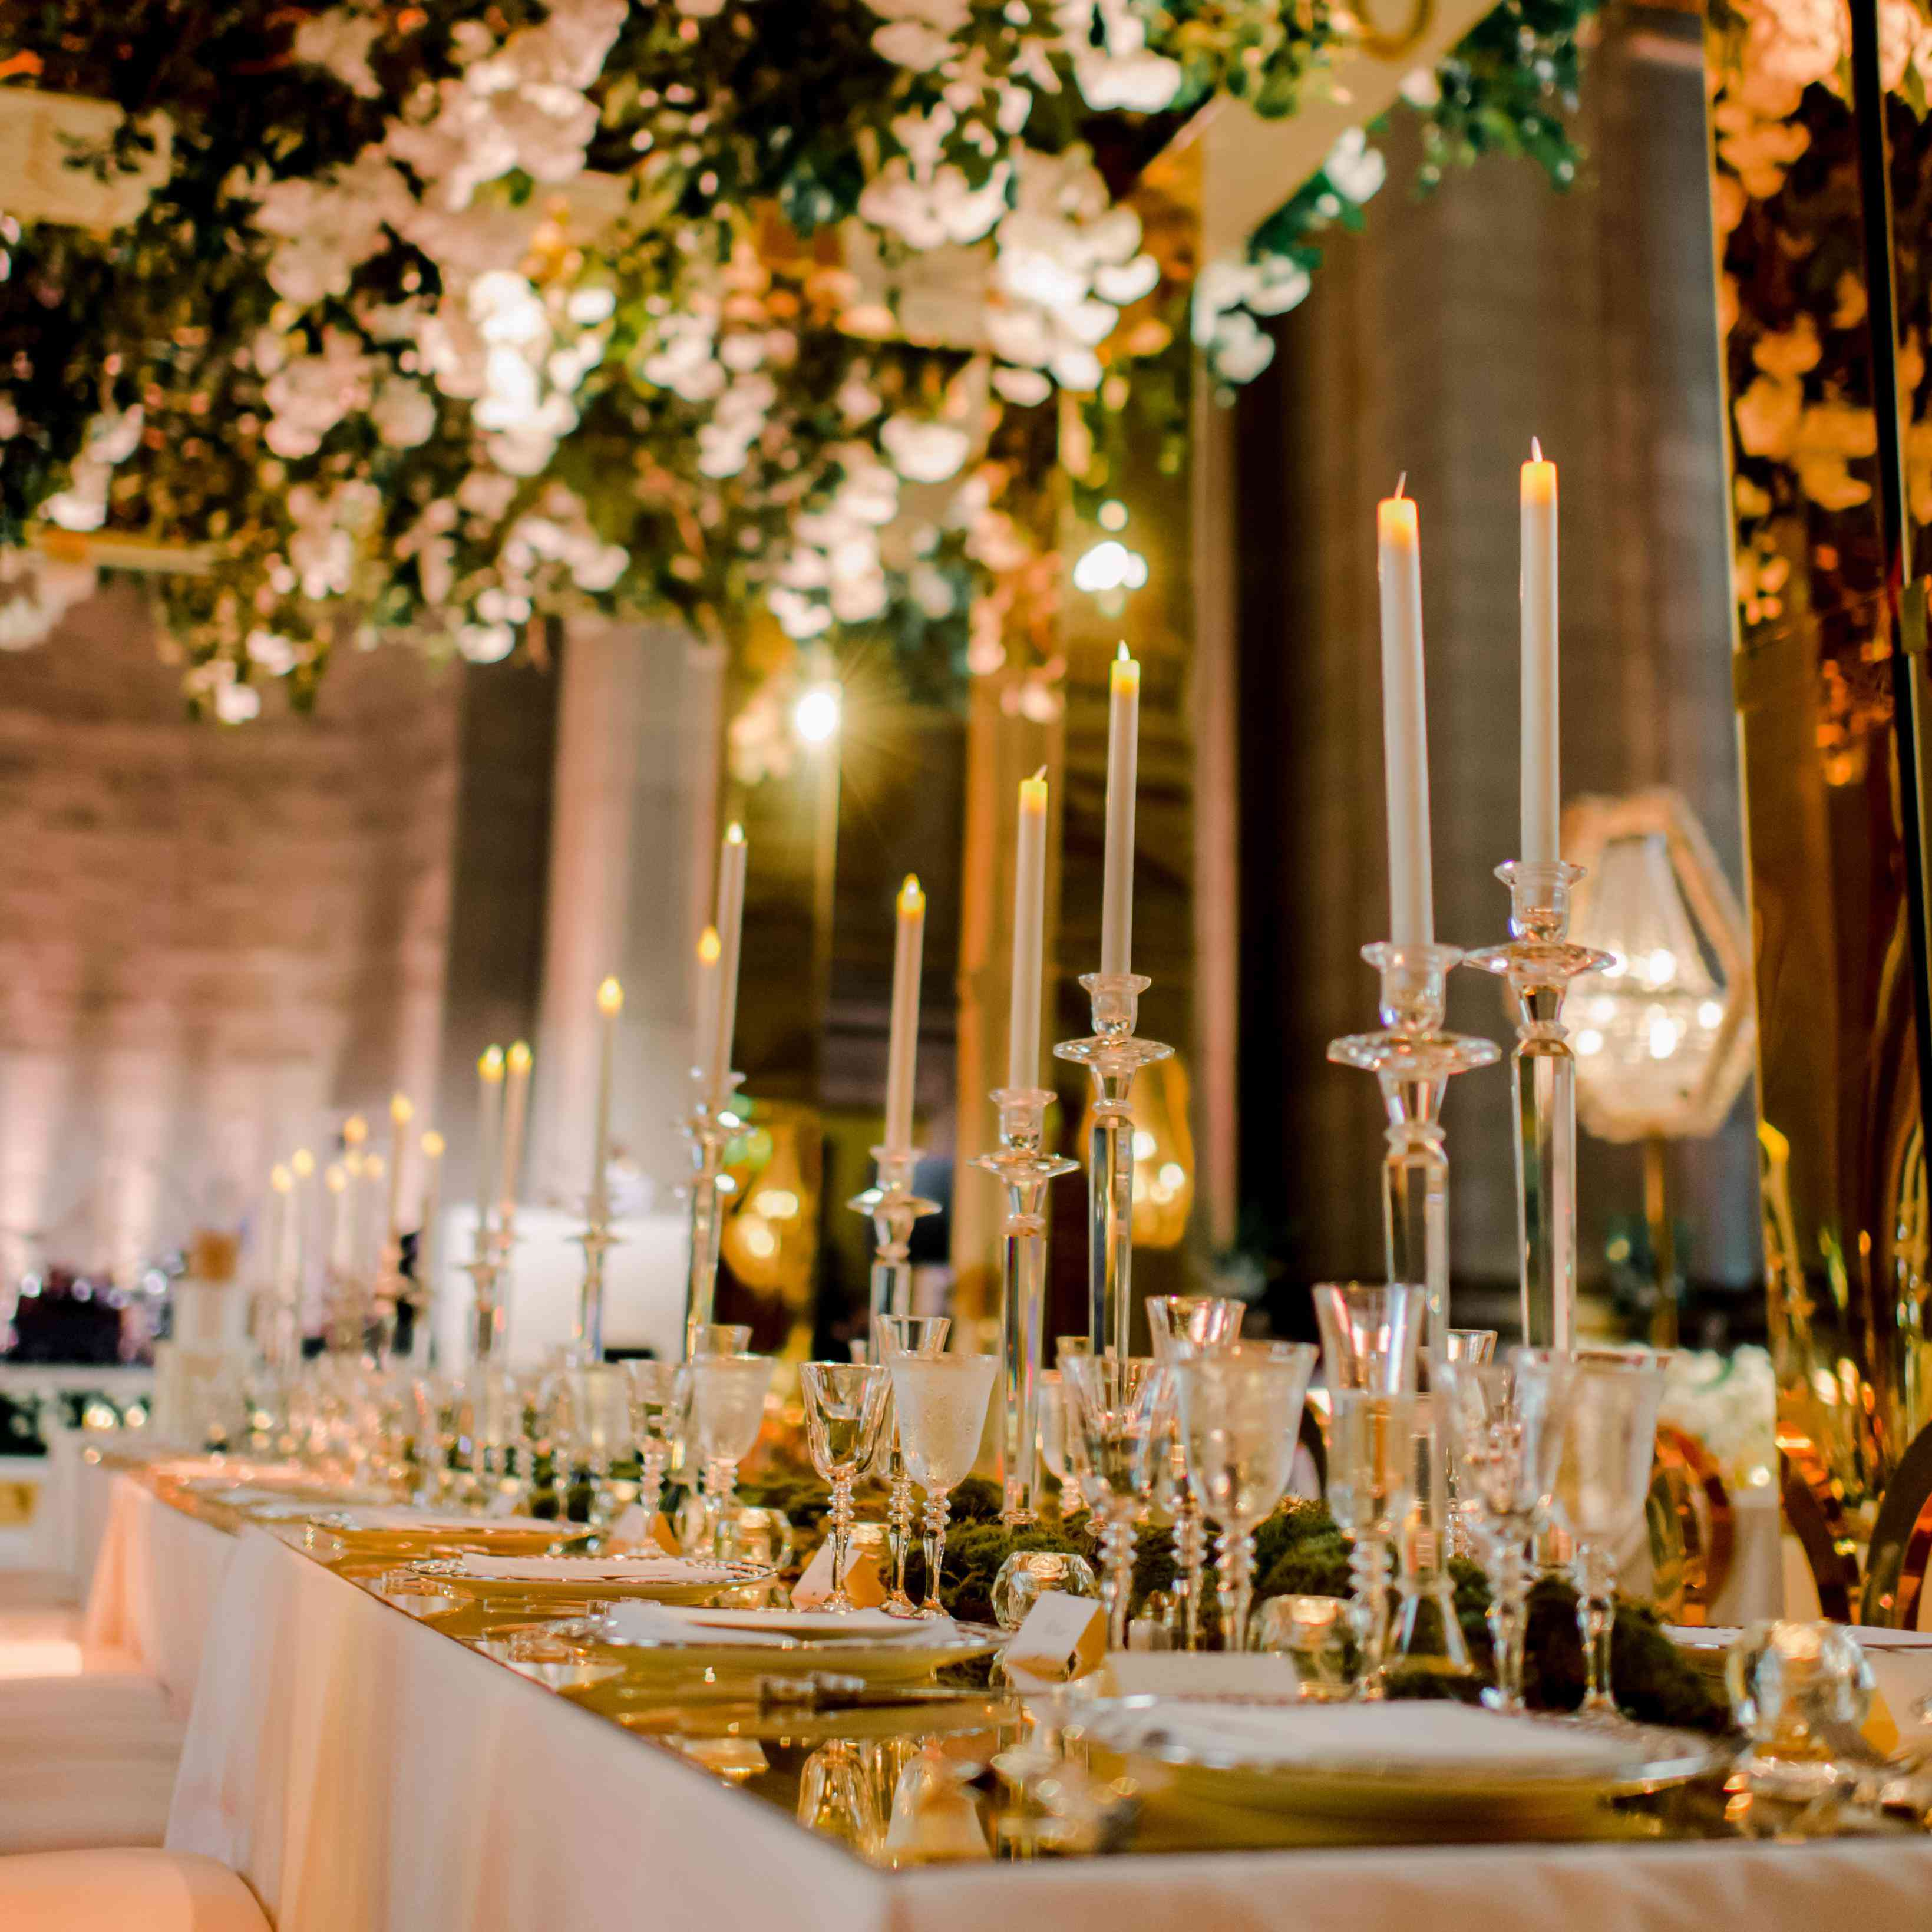 What To Do With Wedding Decorations After Your Reception